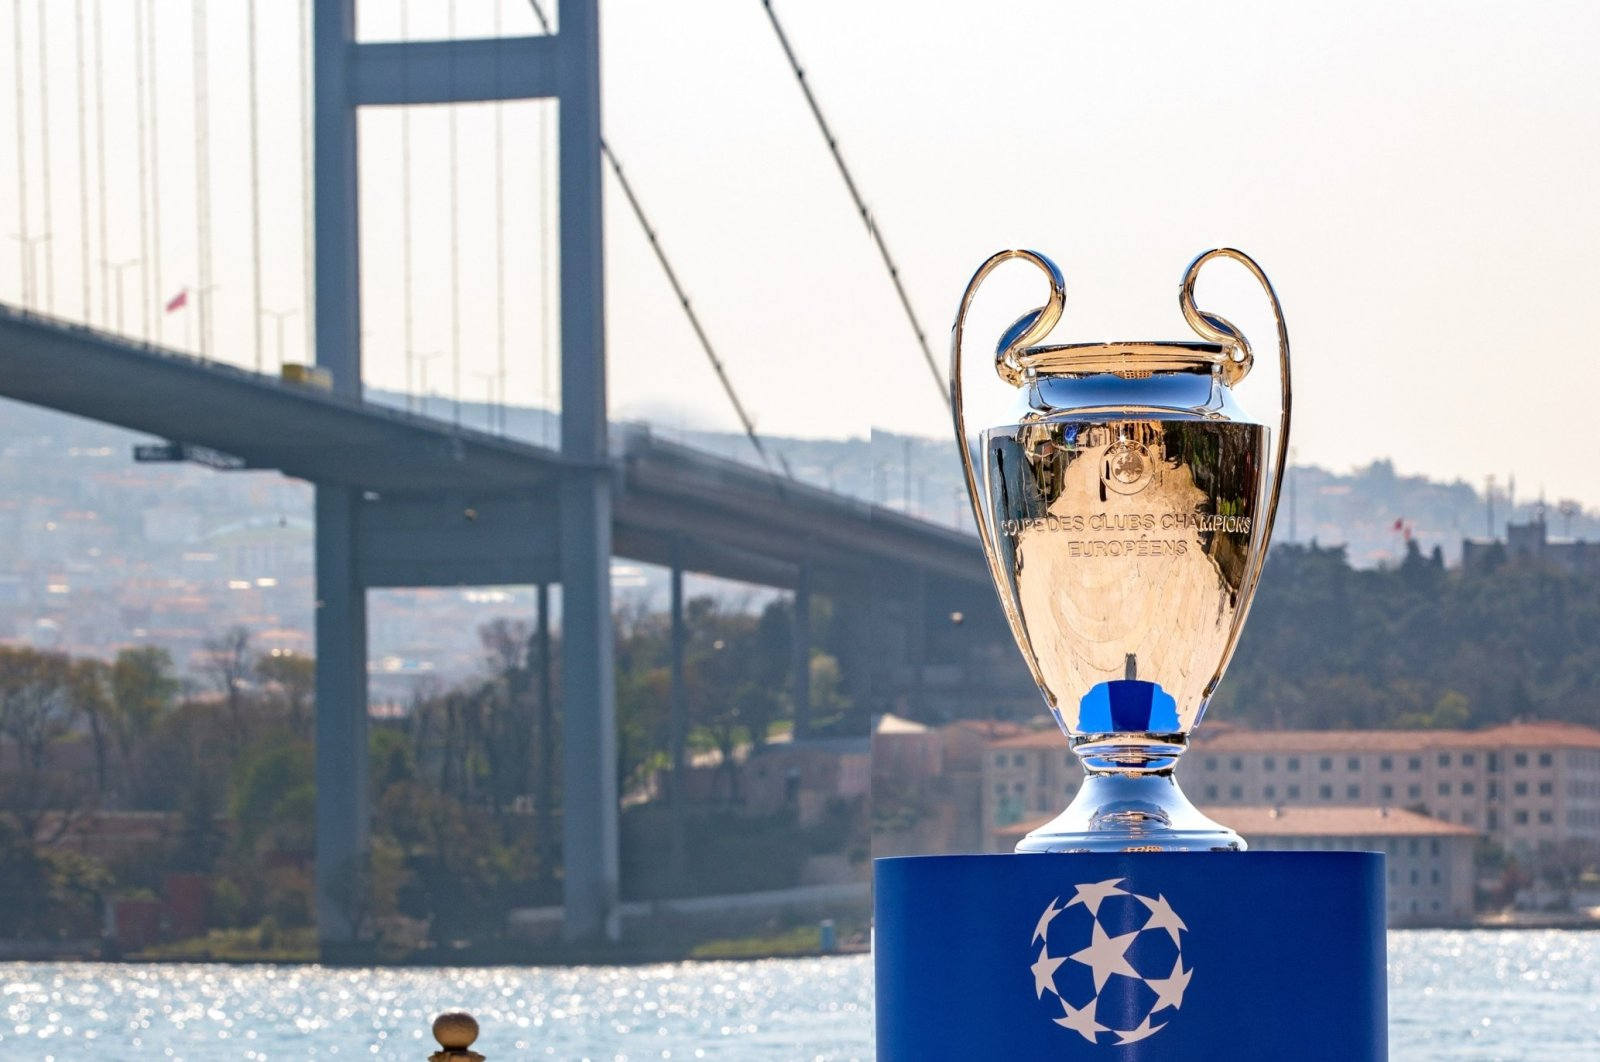 This file photo shows the Champions League trophy by the Bosporus for the final match originally scheduled to take place in Istanbul, Turkey, on May 13, 2021. (DHA Photo)